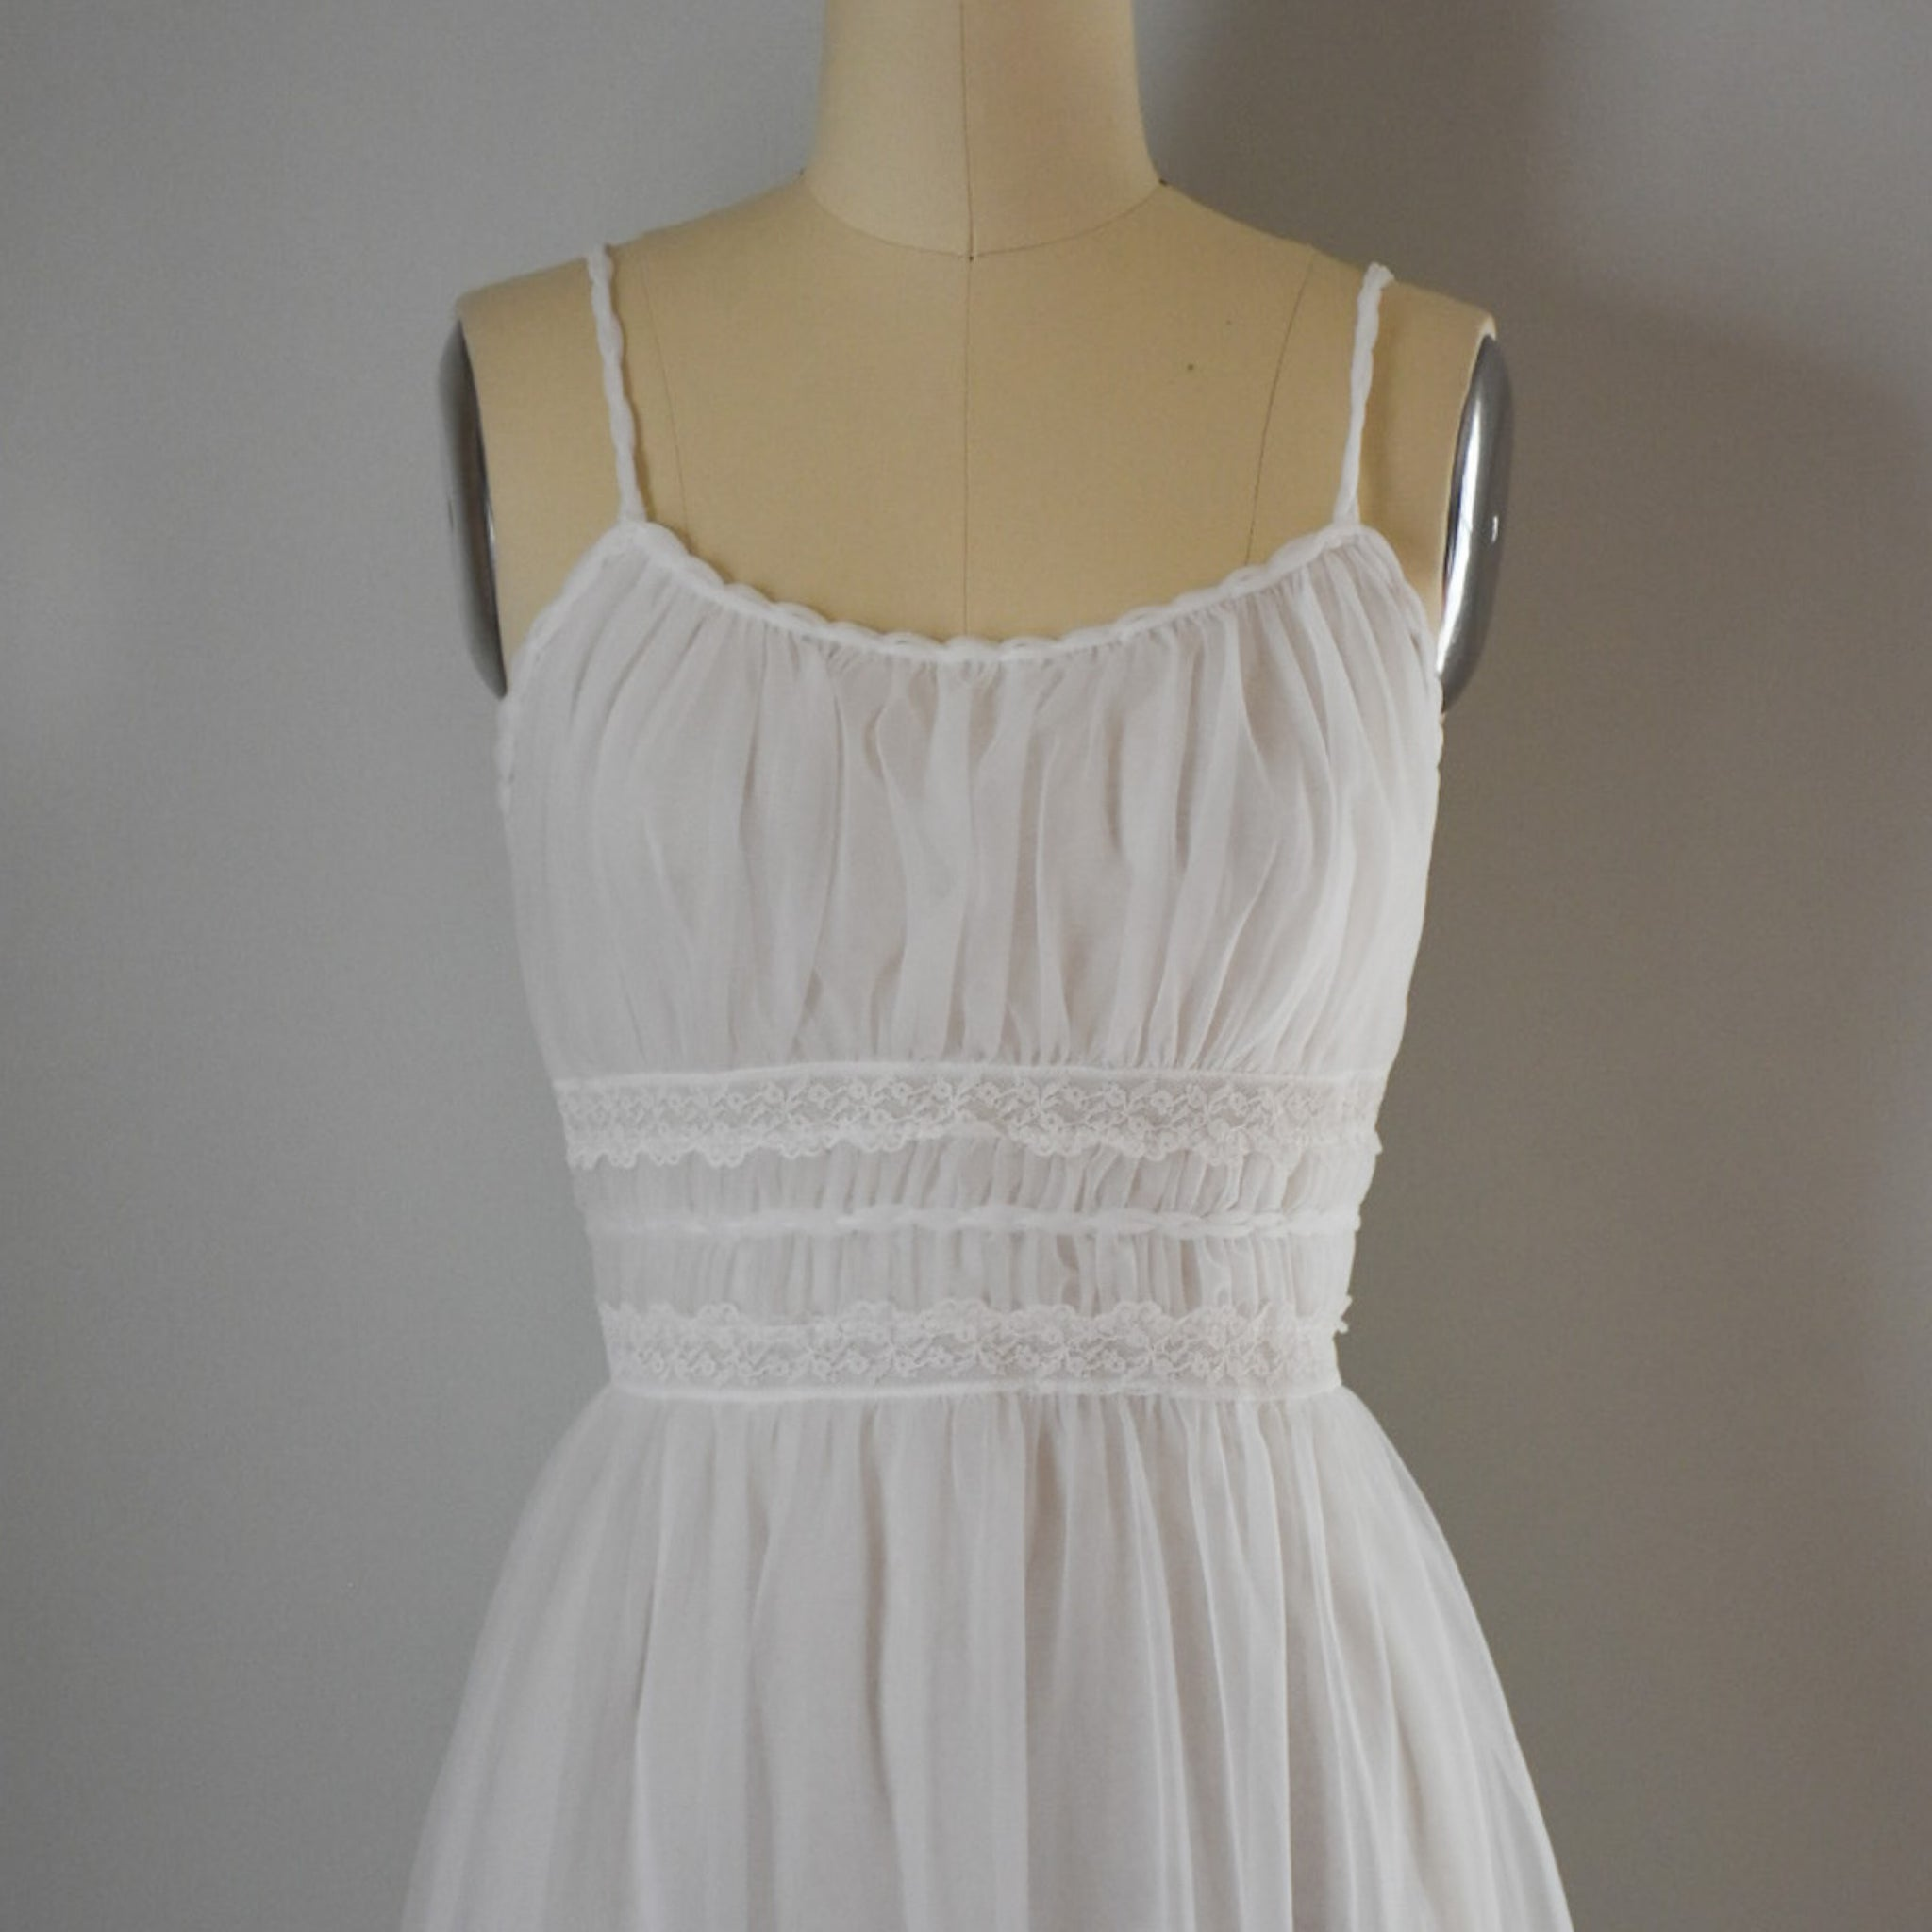 SOLD // 50s White Nightgown